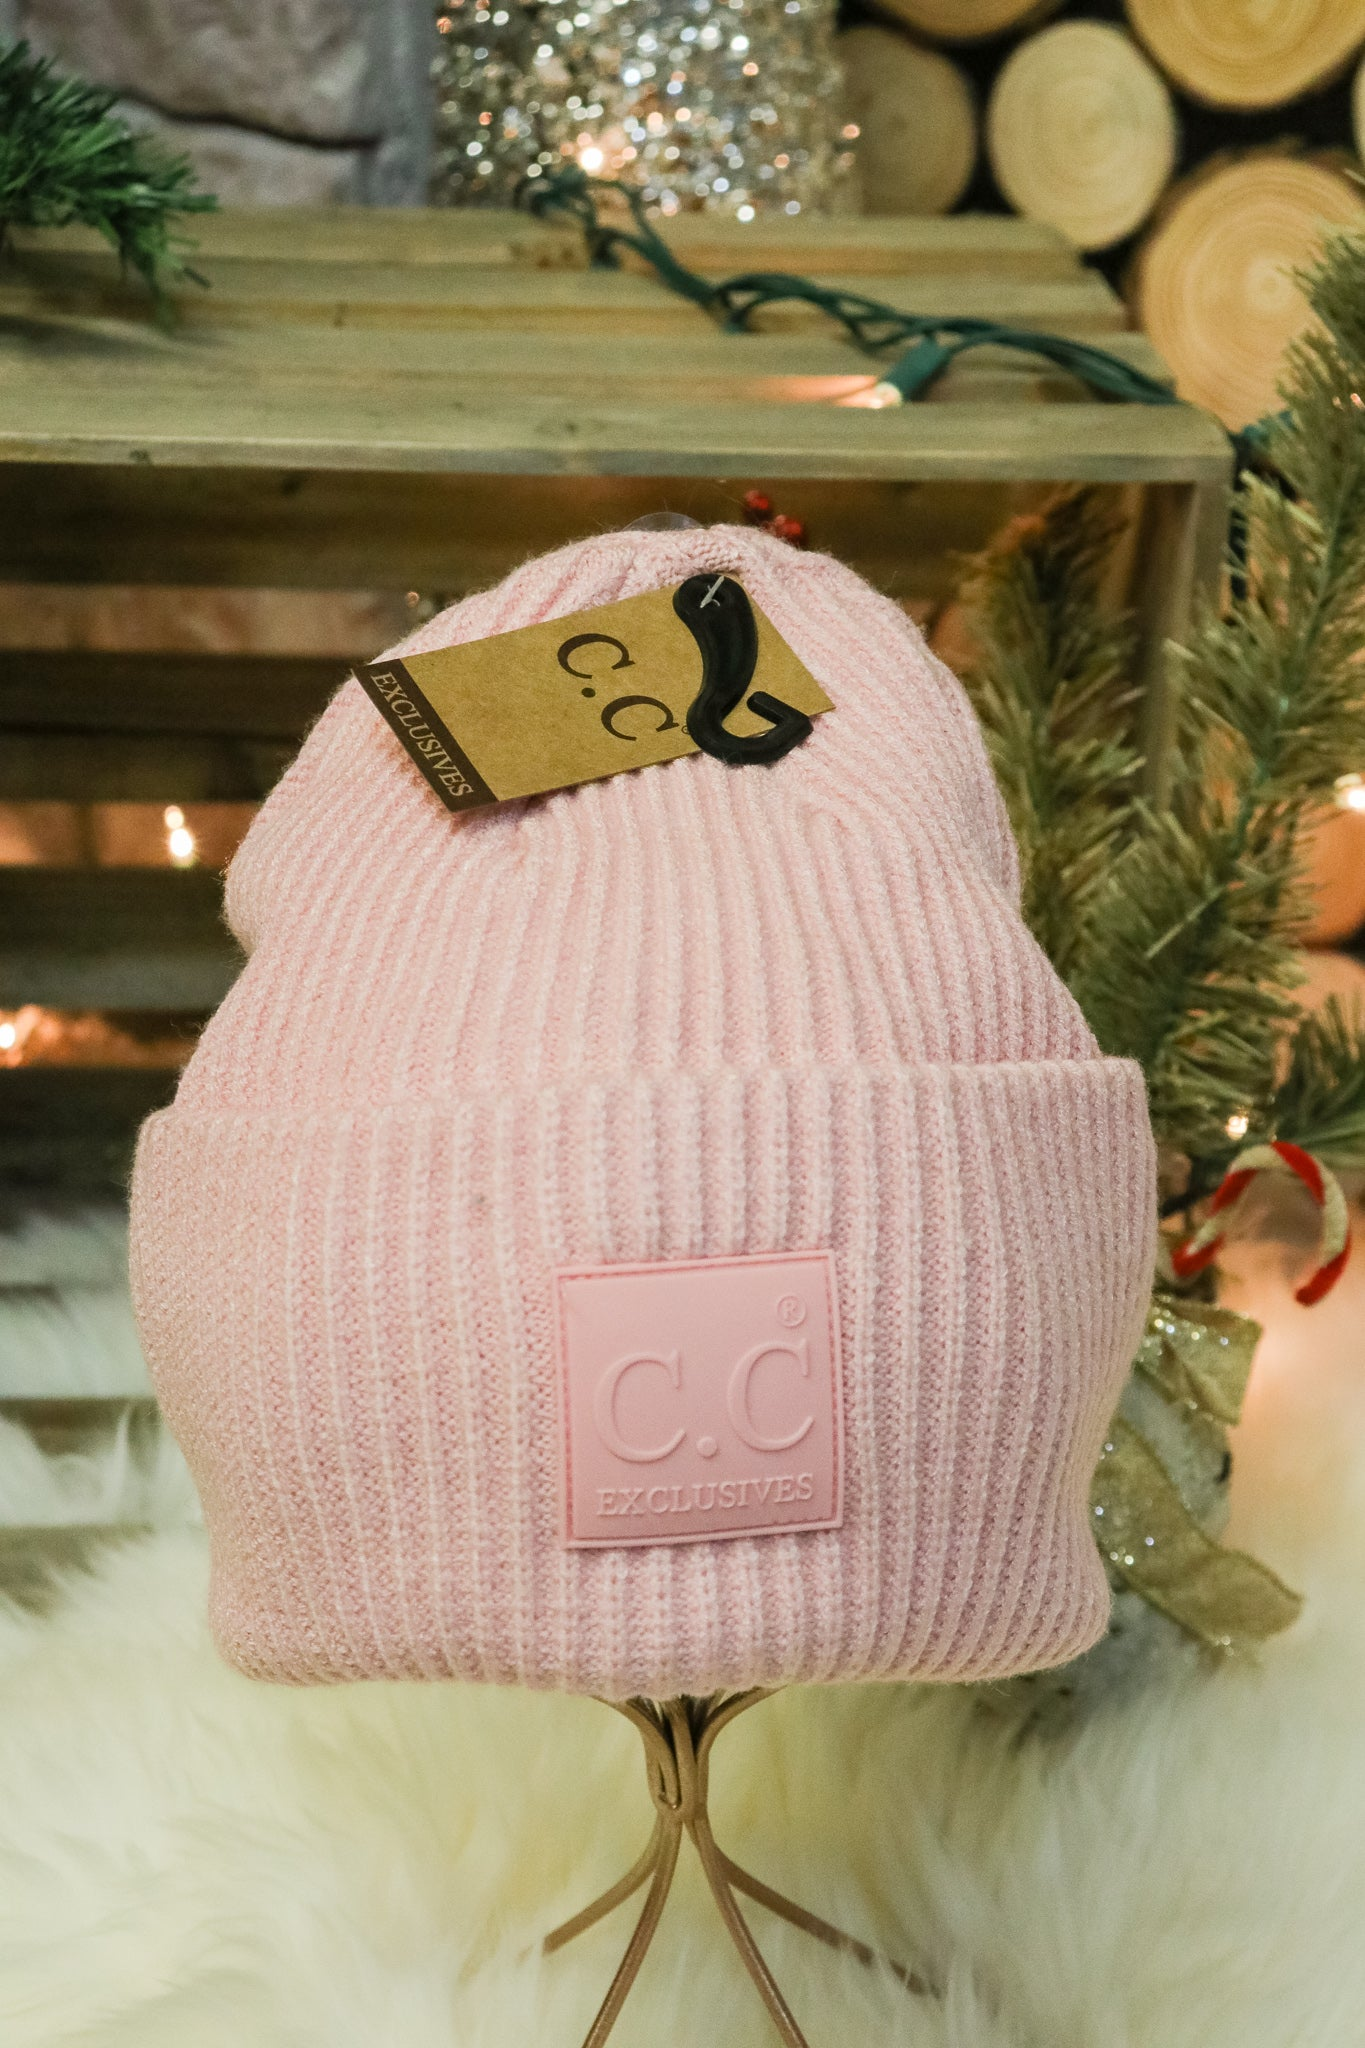 Cozy Nights Classic Beanie 1 - JQ Clothing Co. - Oakes, ND